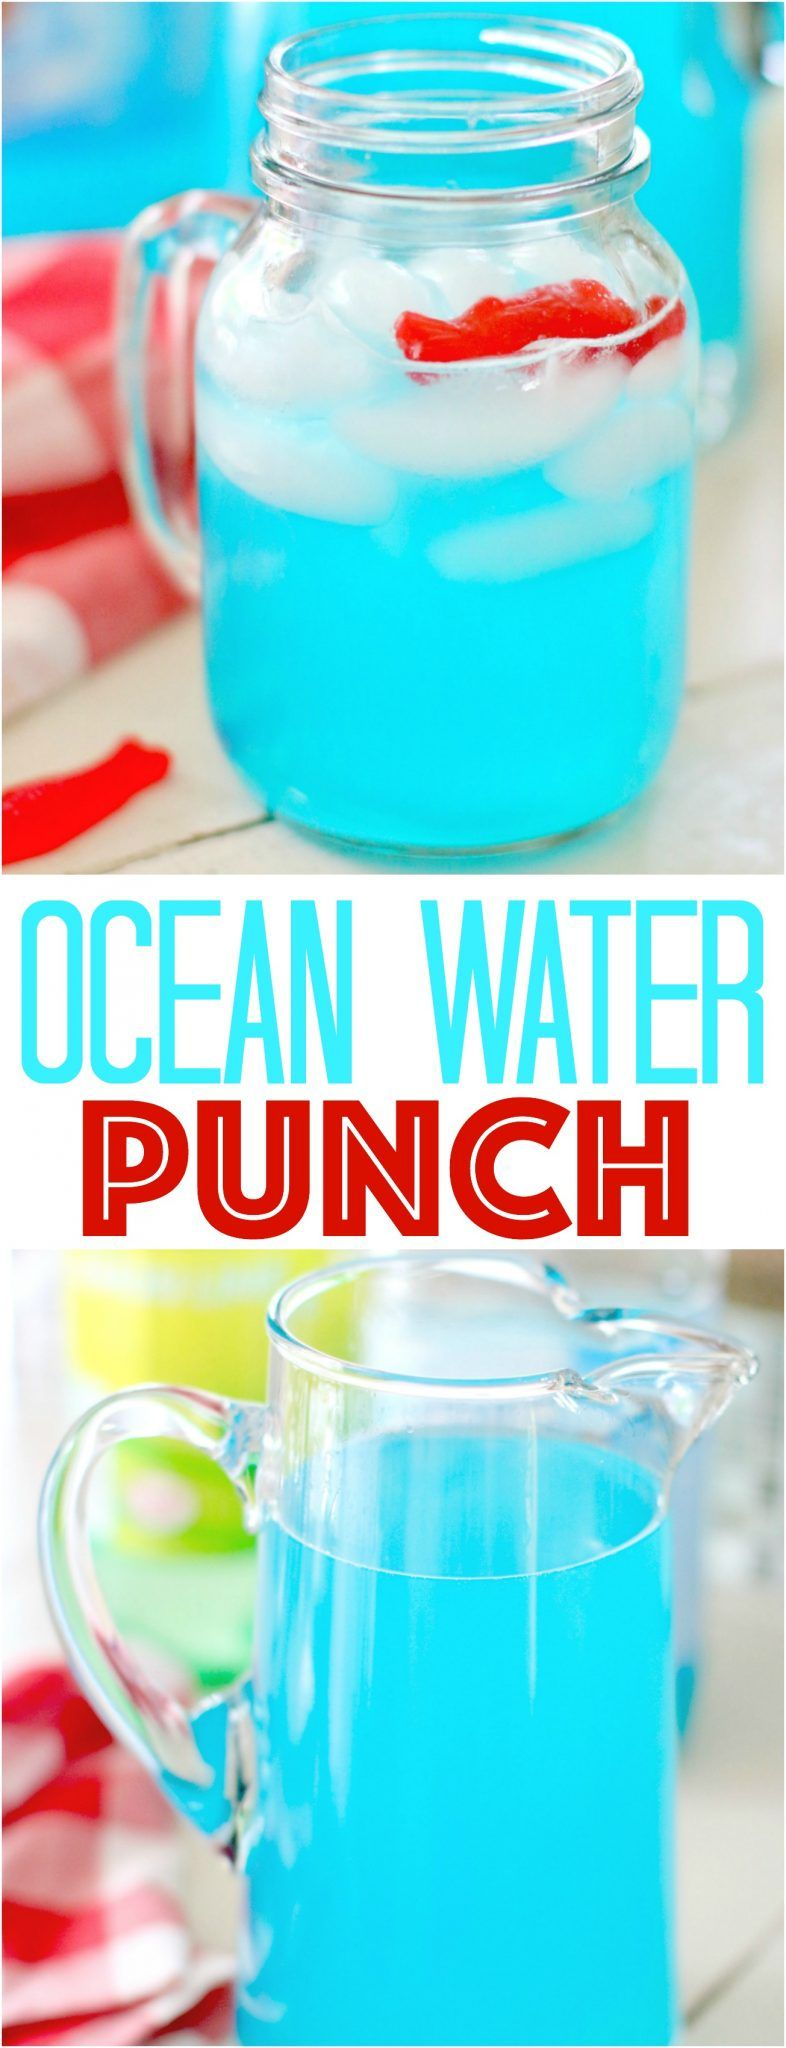 Easy Ocean Water Punch The Country Cook Recipe Punch Drinks Kid Drinks Punch Recipes